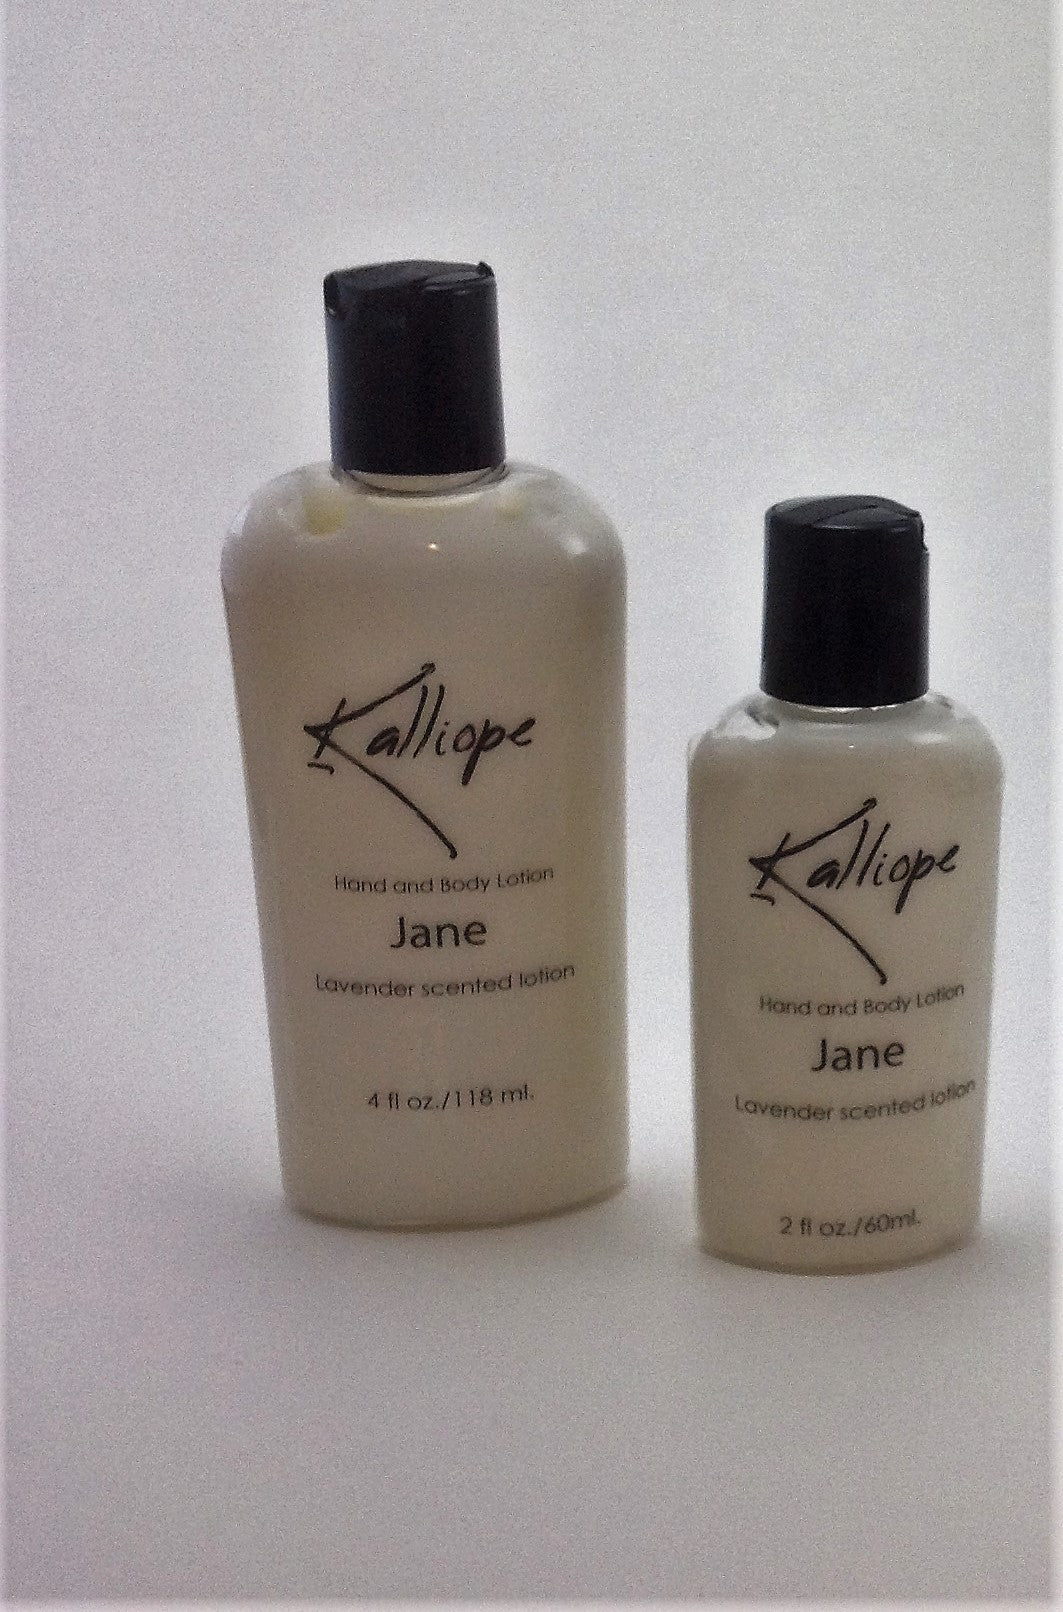 Jane lotion, moisturizing with the soft scent of lavender